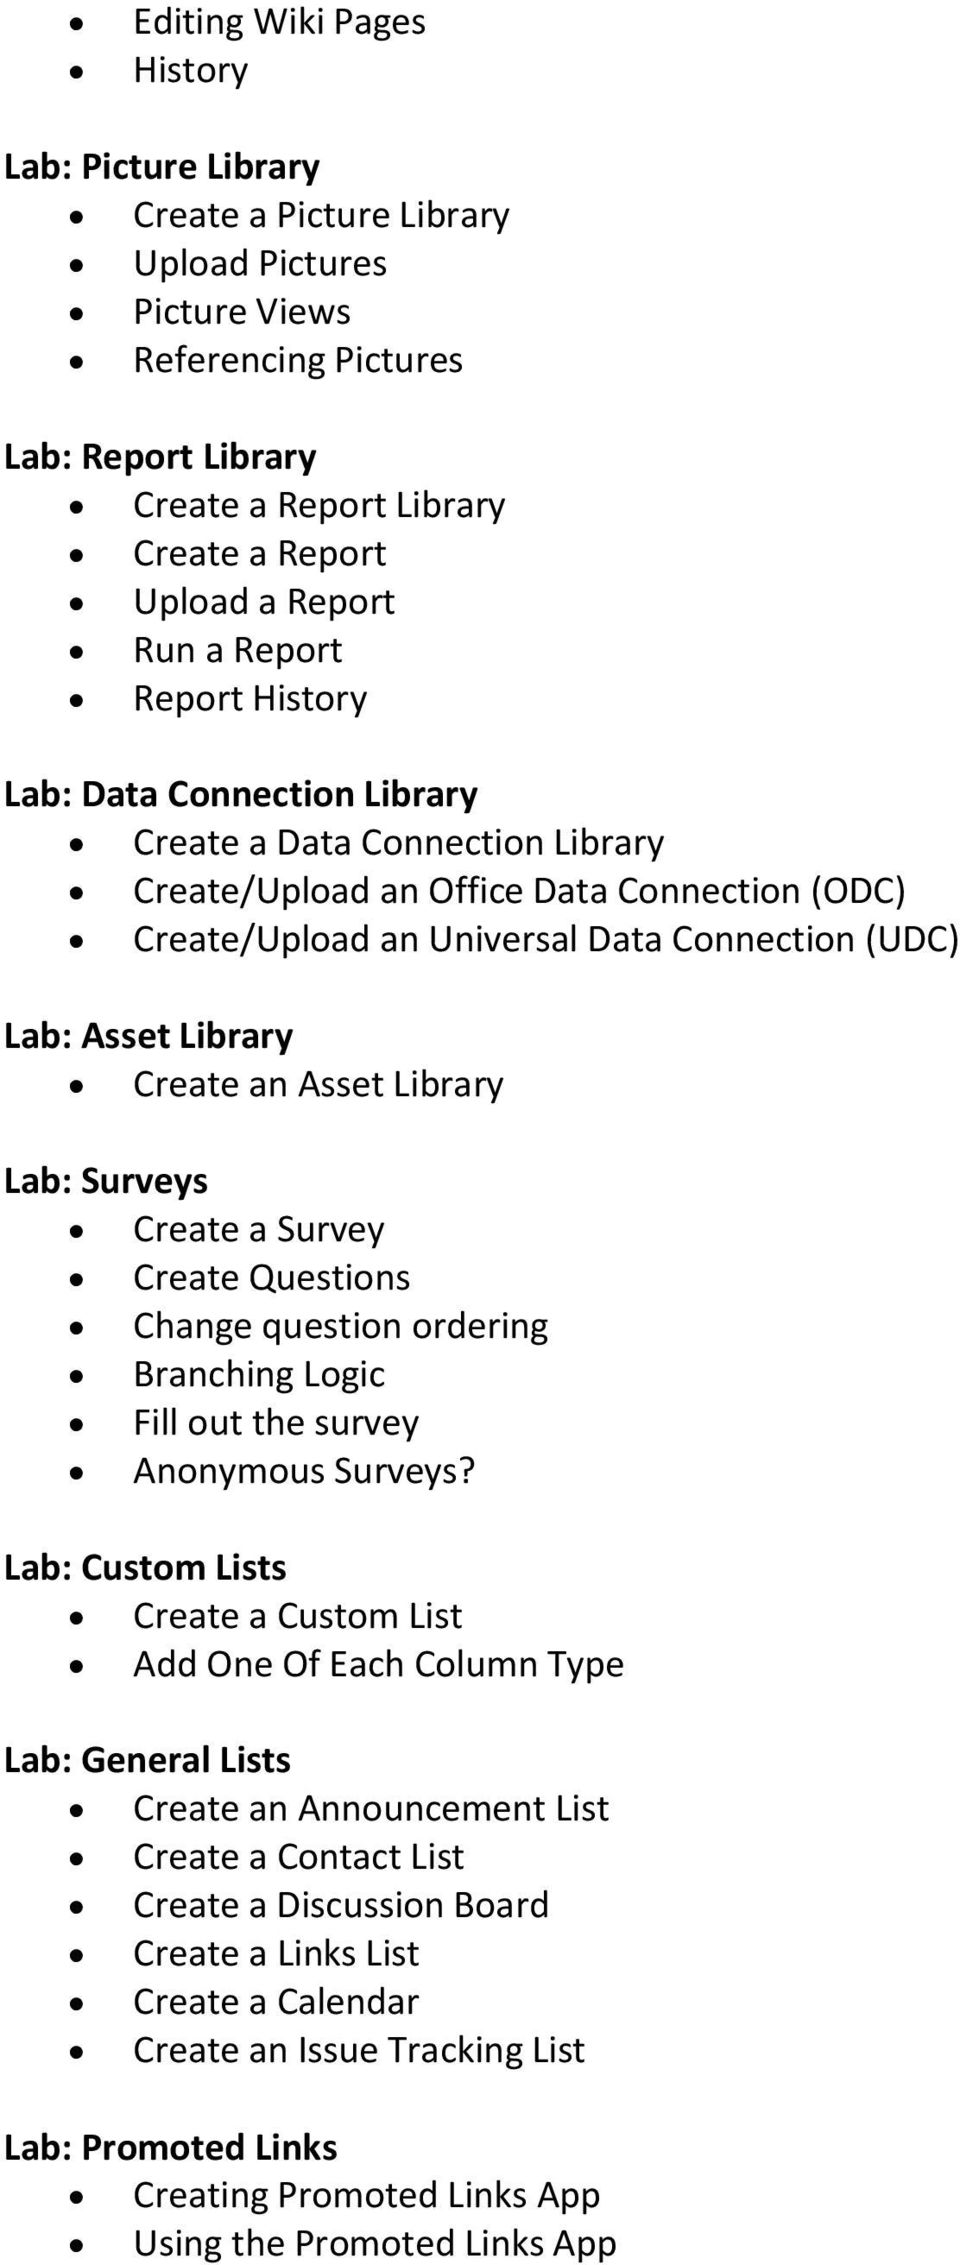 Library Create an Asset Library Lab: Surveys Create a Survey Create Questions Change question ordering Branching Logic Fill out the survey Anonymous Surveys?